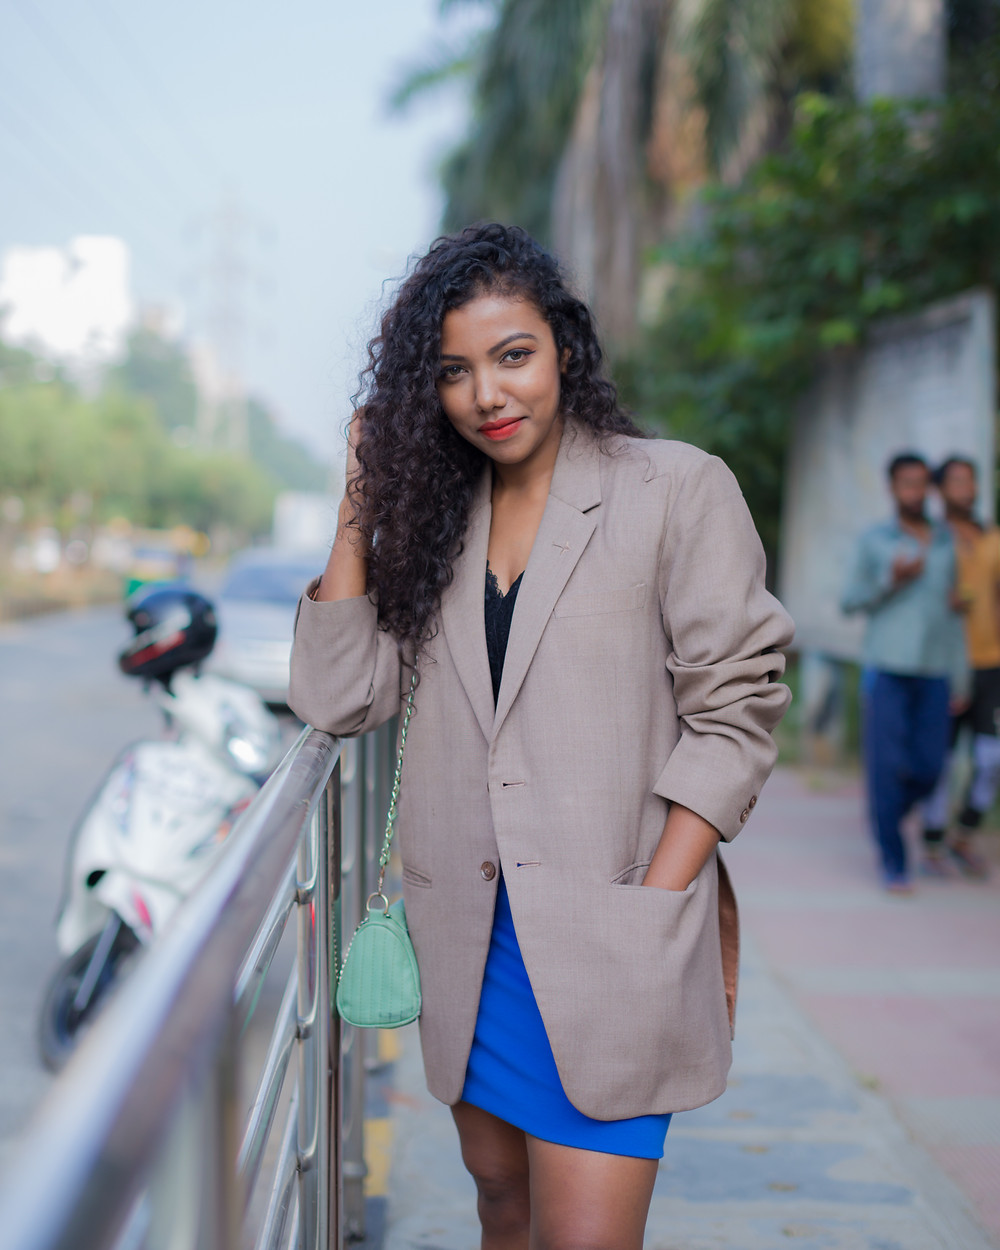 The Curly Mode, Oversized Blazer, Styling, Look Book